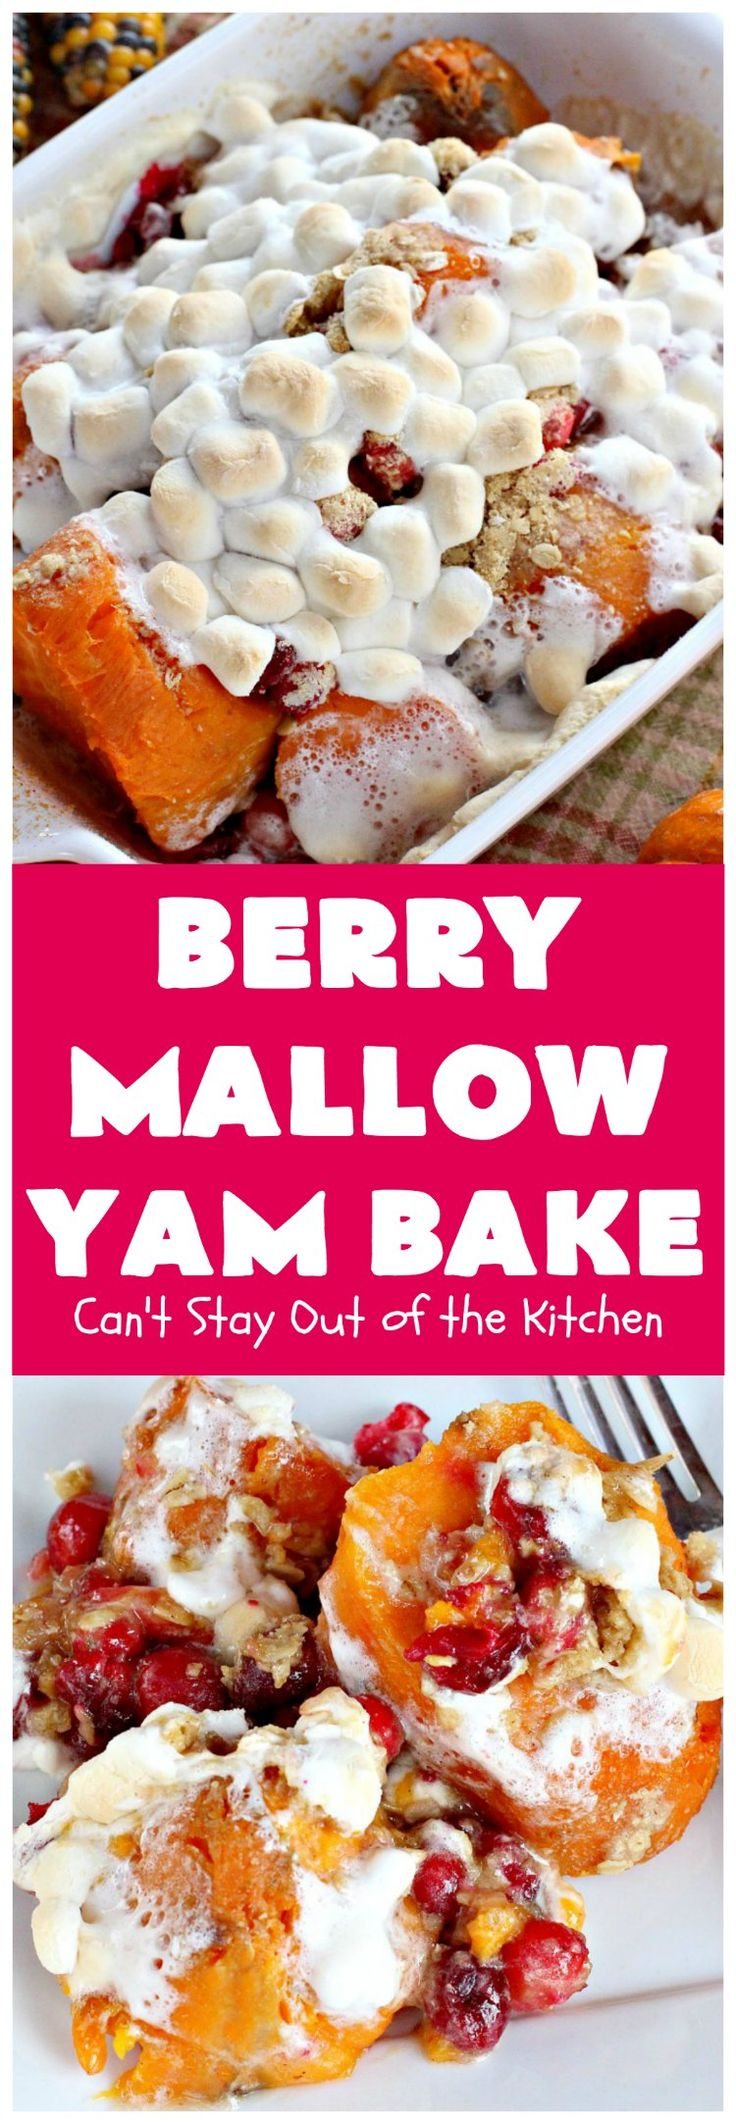 Berry Mallow Yam Bake   Can't Stay Out of the Kitchen   this is my husband's favorite #sweetpotato #casserole hands down! He eats this like a #dessert! It uses #cranberries, an oatmeal streusel topping, & #marshmallows on top. It's terrific for any #holiday or company dinner, but especially great for #Thanksgiving and #Christmas. #glutenfree